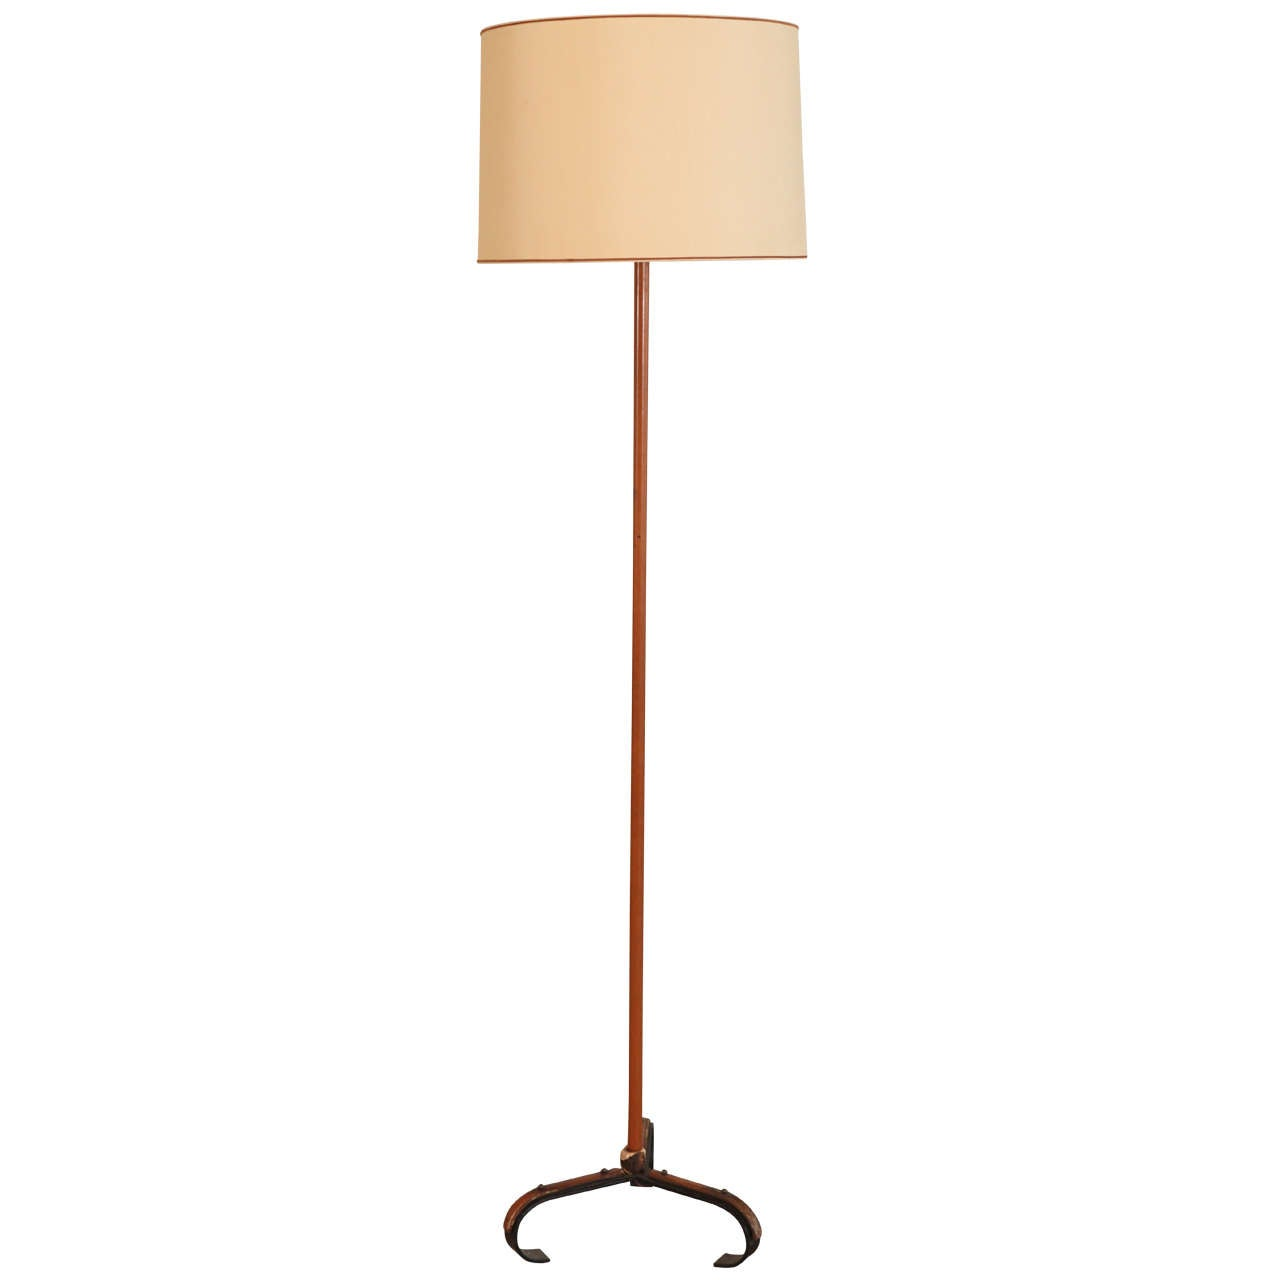 Jacques Adnet Leather Bound Floor Lamp